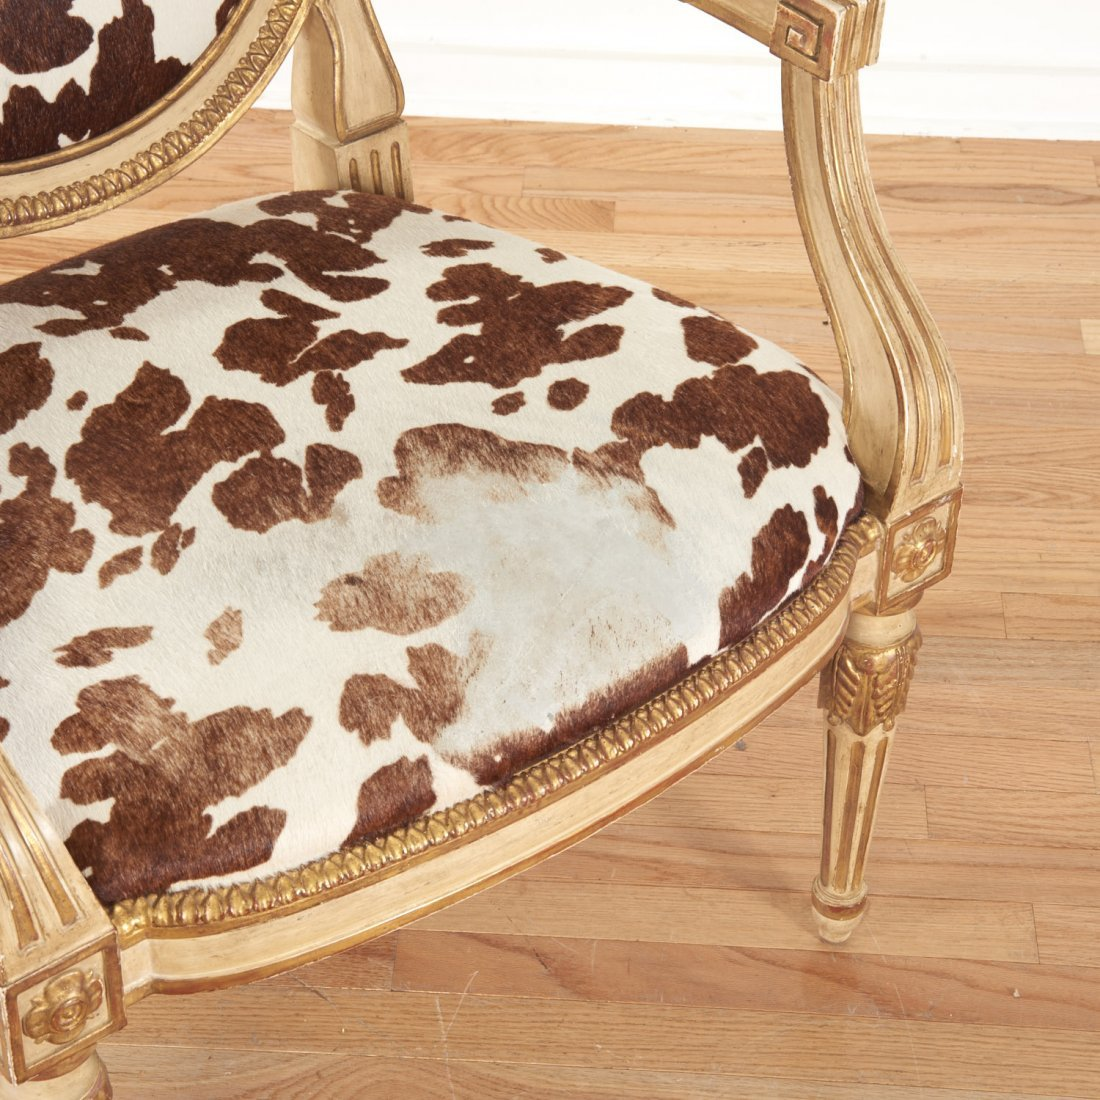 Louis XVI style cowhide fauteuil by Dennis & Leen - 2